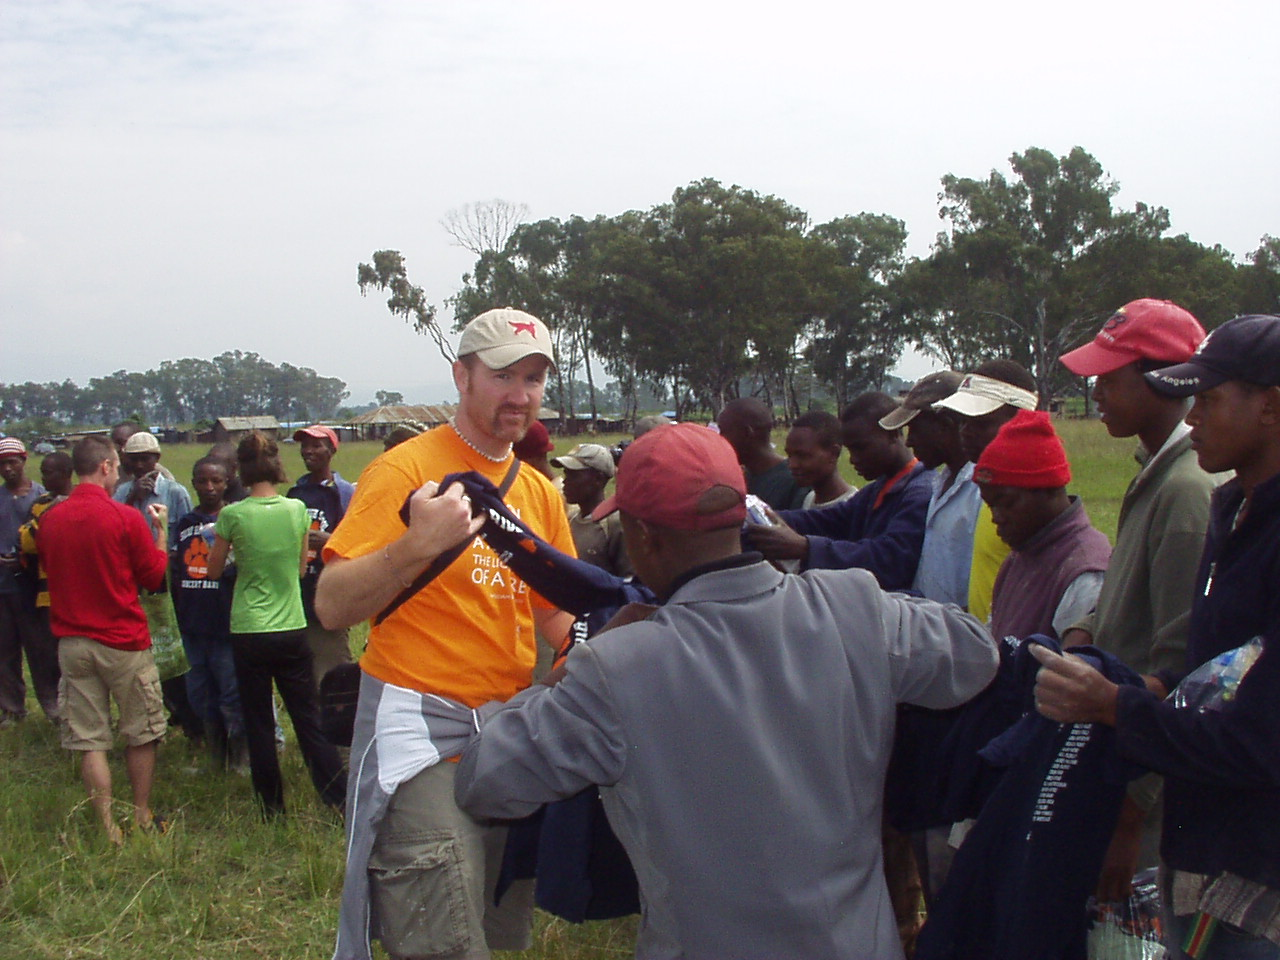 Handing out yet even more Solvay Concert band t-shirts to Kenyan work crew